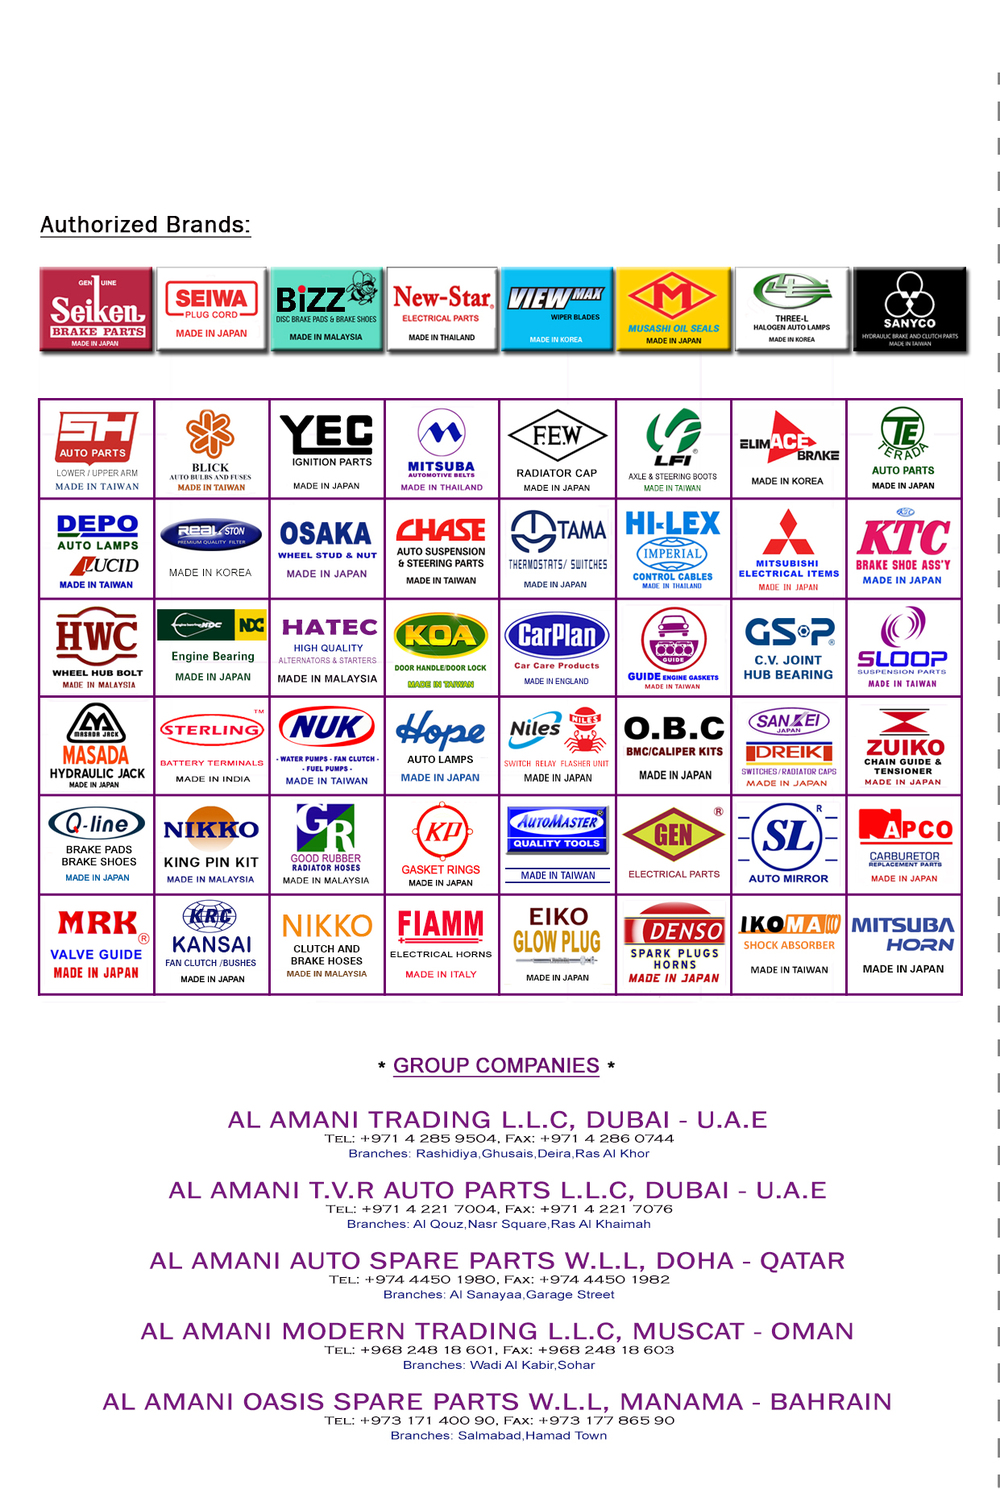 Brands & Group of Companies - Qatar Local Businesses Photo Album By